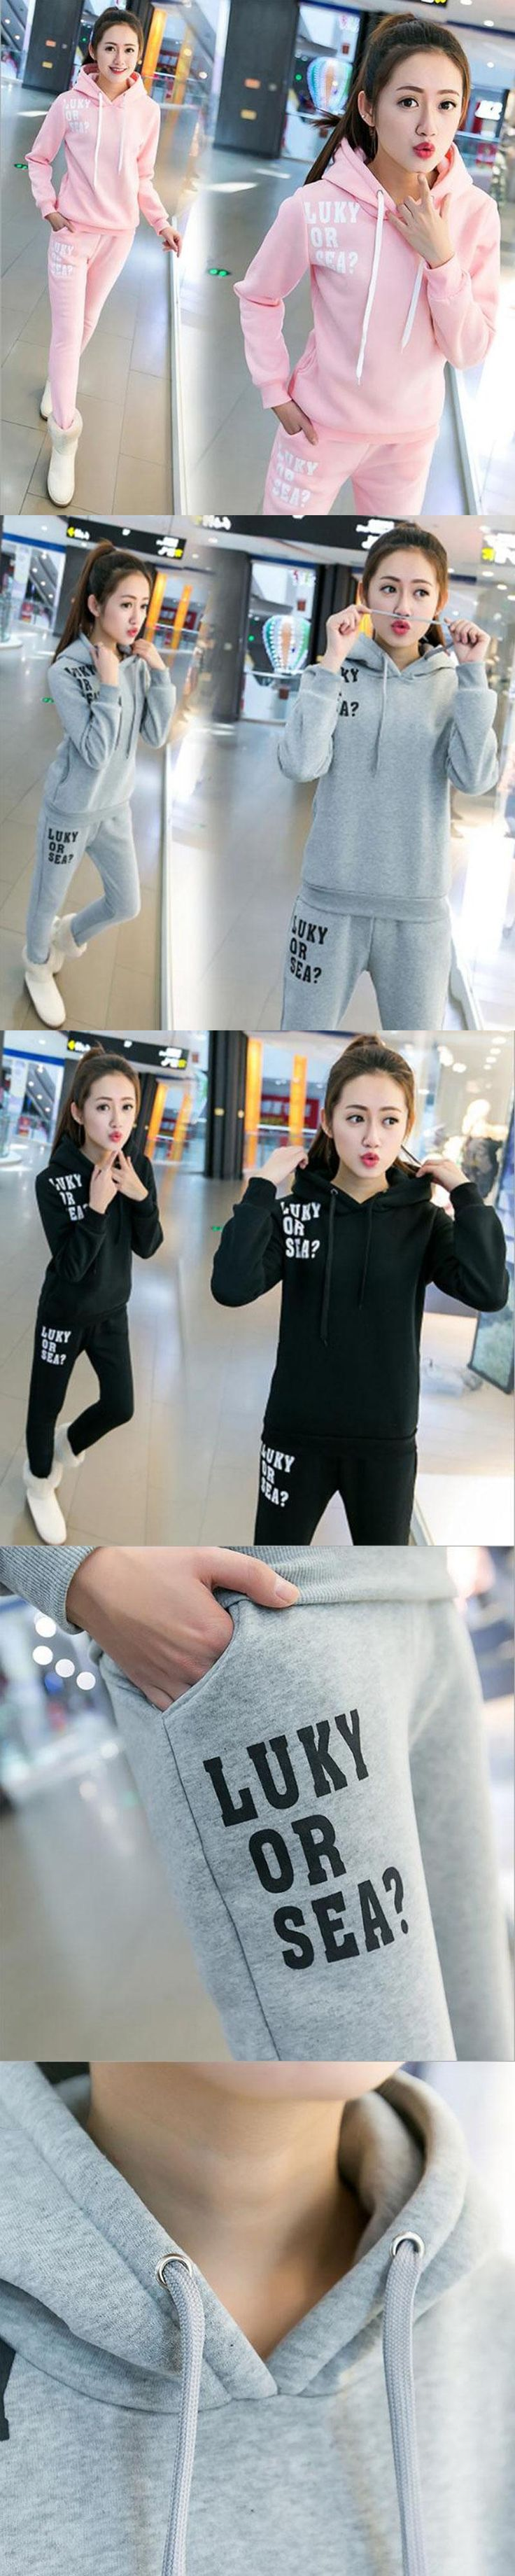 Women Clothing Sporting Sets 2016 Fashion Female Girls Clothes Girls Long-Sleeved Casual Suit Lady Sportswear